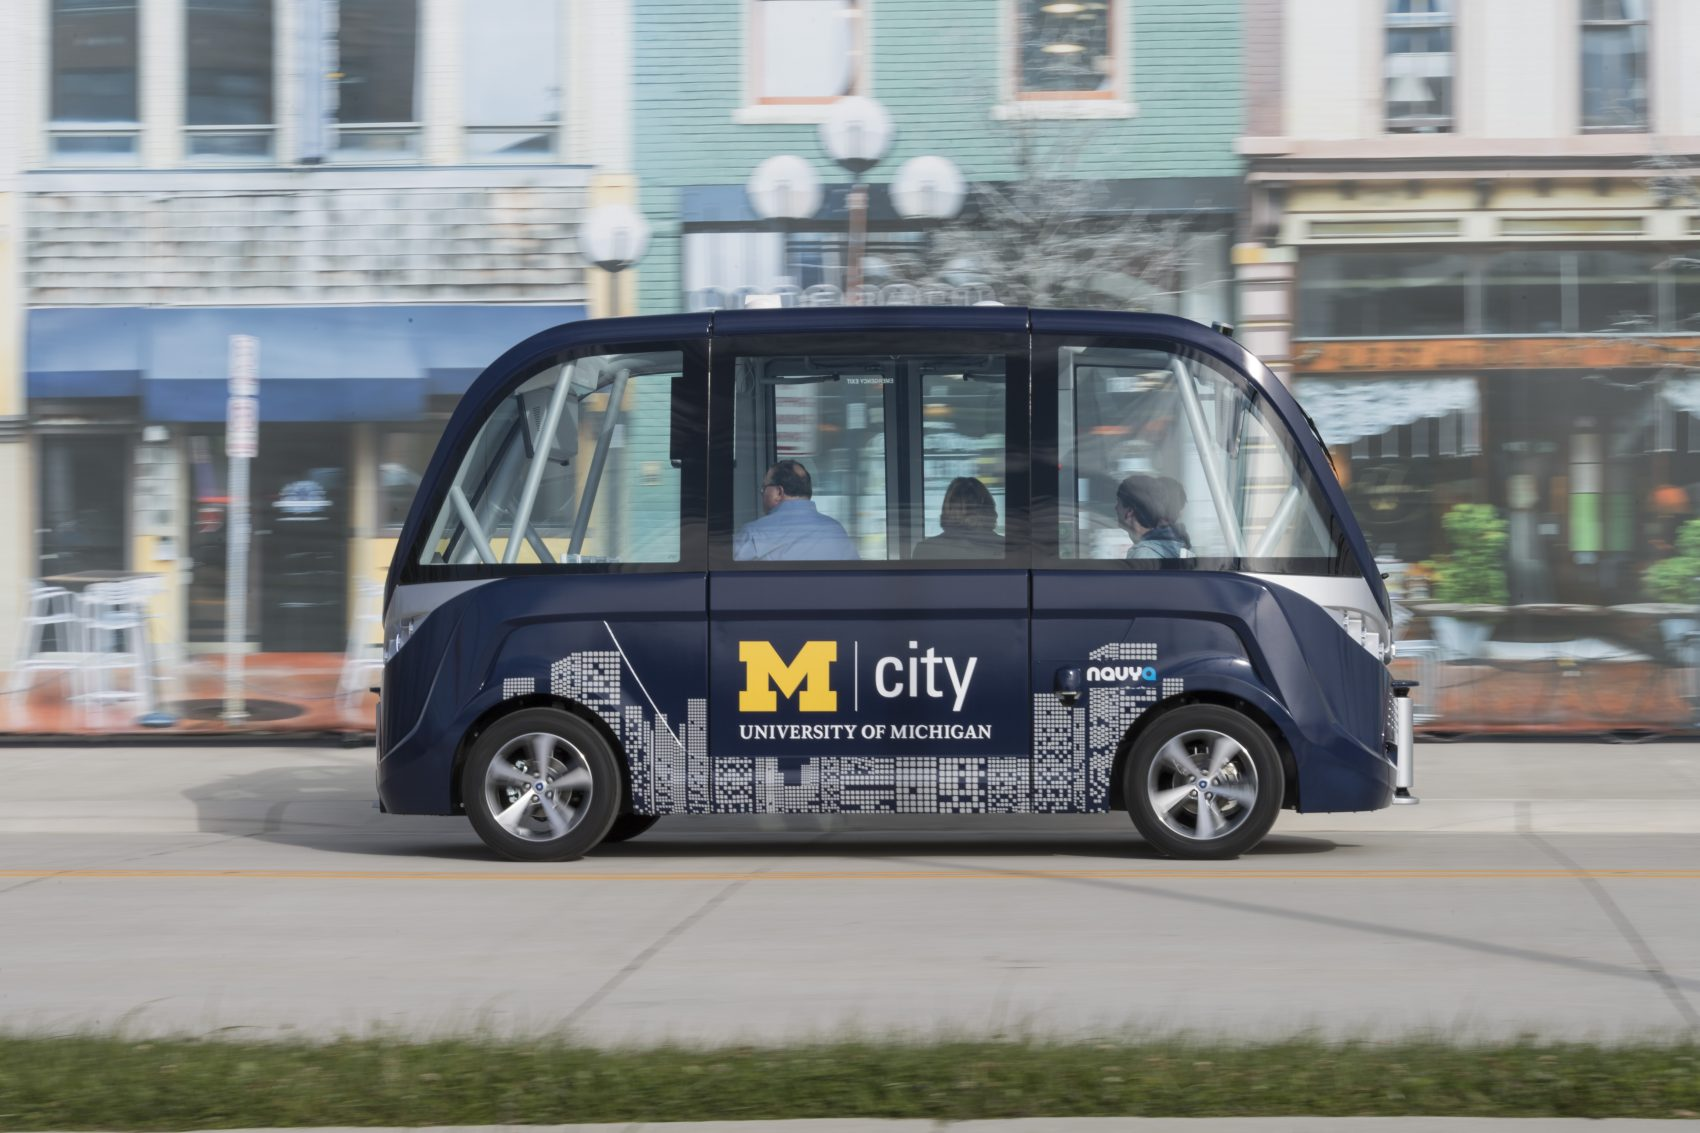 The Arma, a driverless electric shuttle manufactured by French firm NAVYA, was introduced to North America at the Mcity Test Facility in December 2016. (Courtesy University of Michigan)